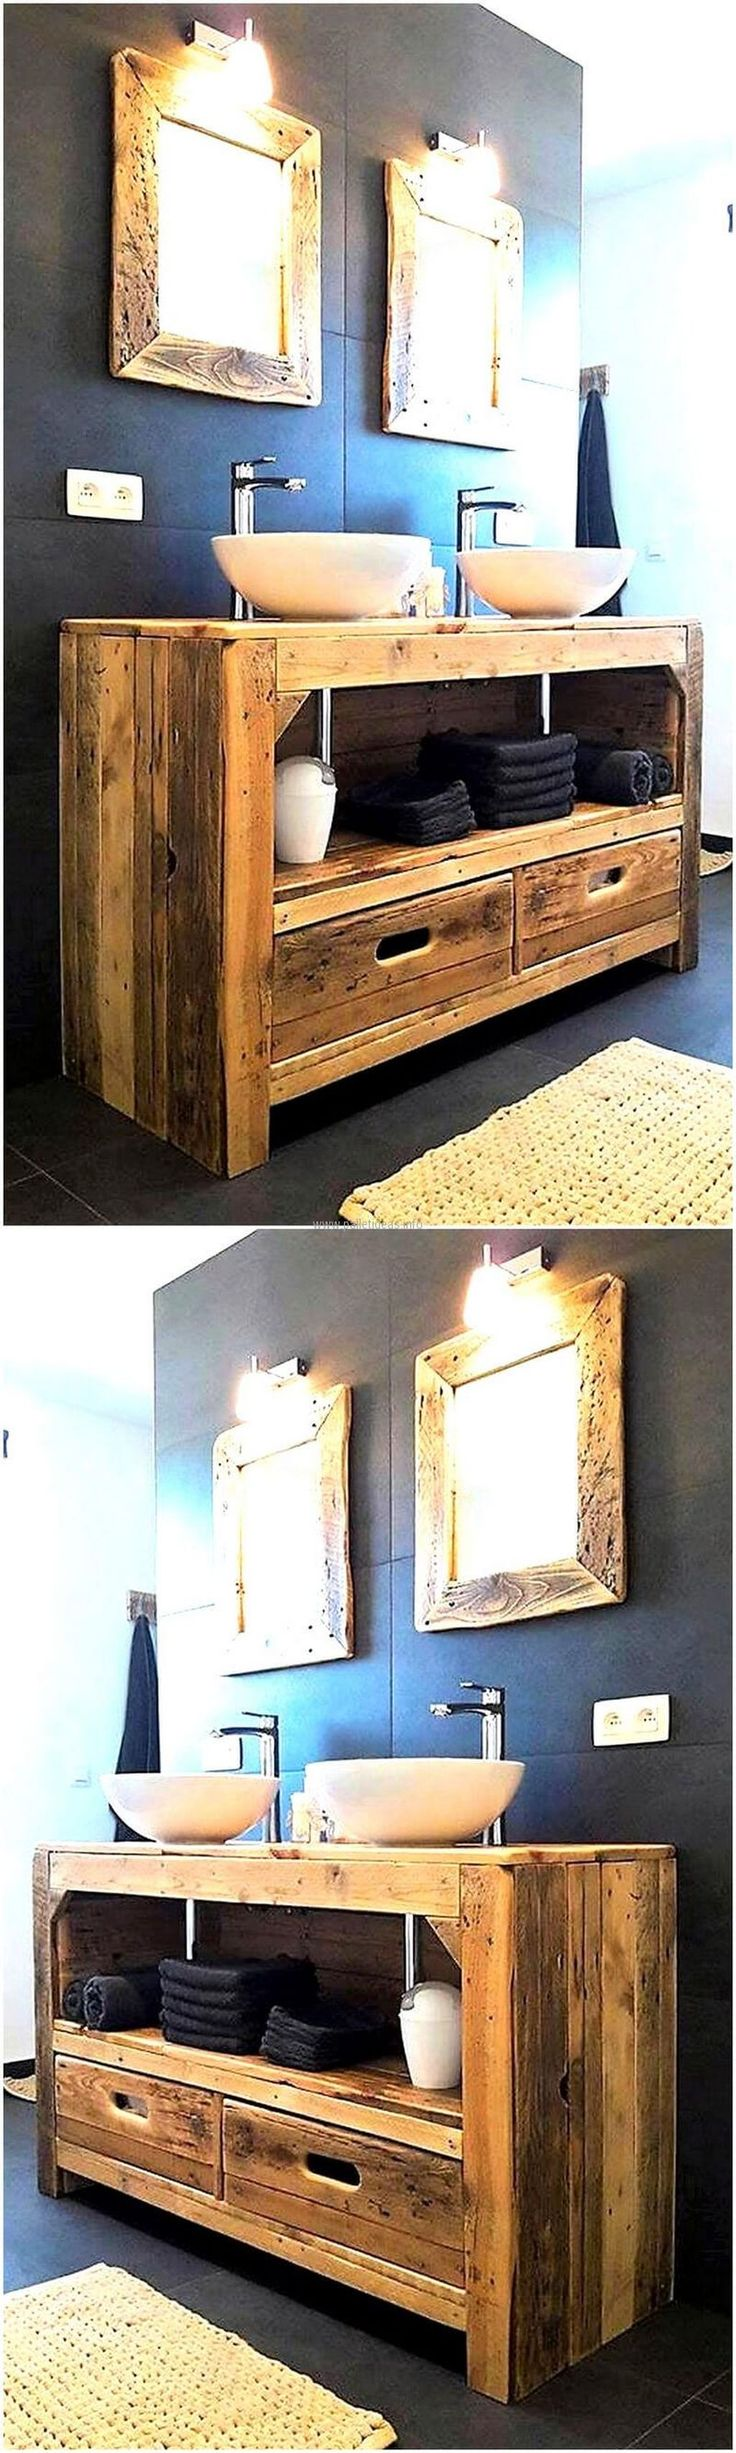 Awesome 50 Easy and Inexpensive DIY Pallet Furniture Ideas https://homeastern.com/2017/11/14/50-easy-inexpensive-diy-pallet-furniture-ideas/